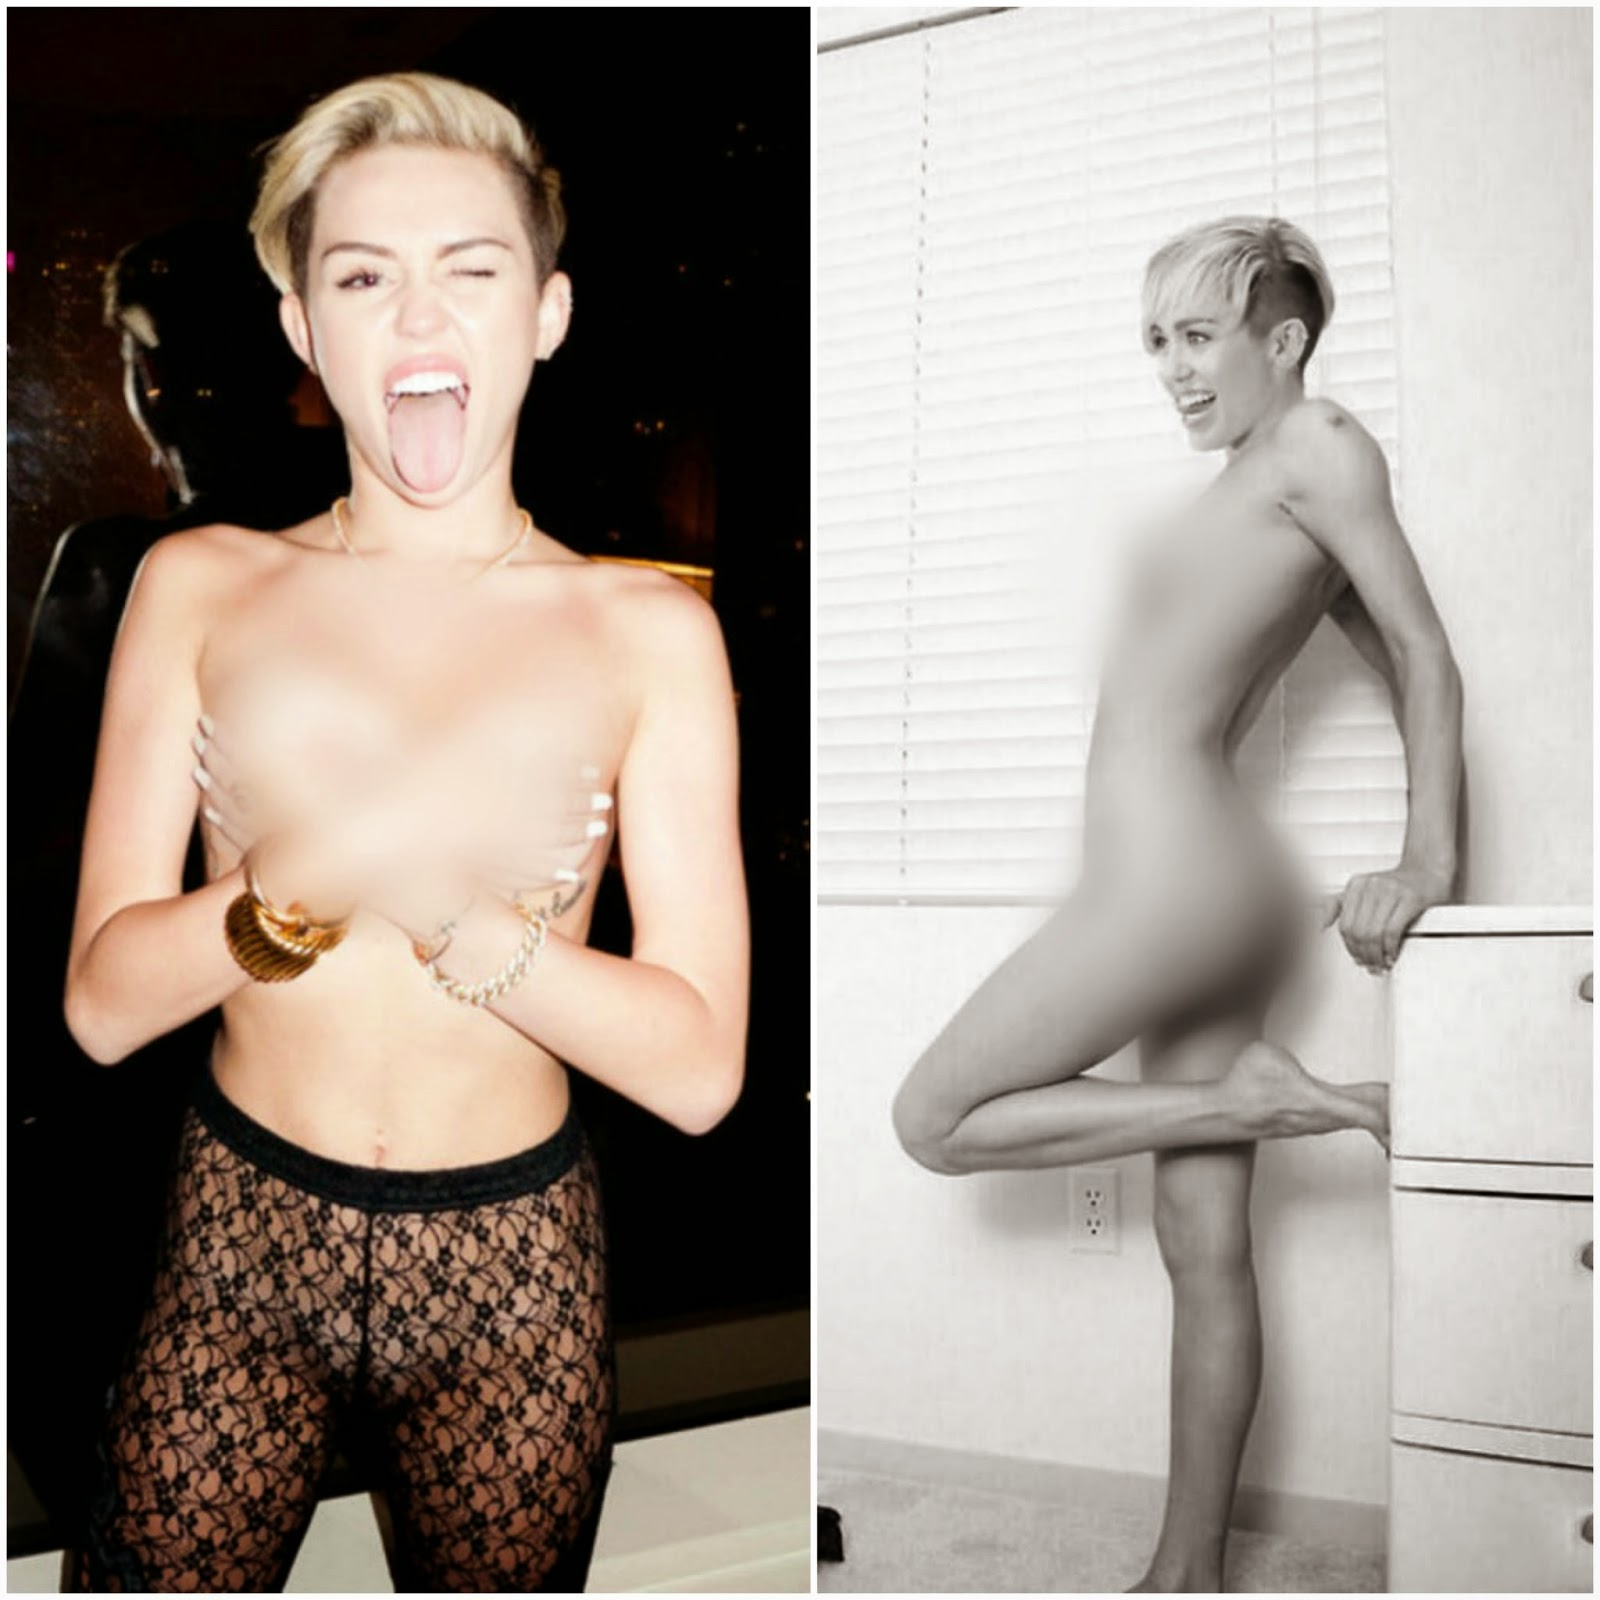 Miley-Cyrus-leaked-nude-photos